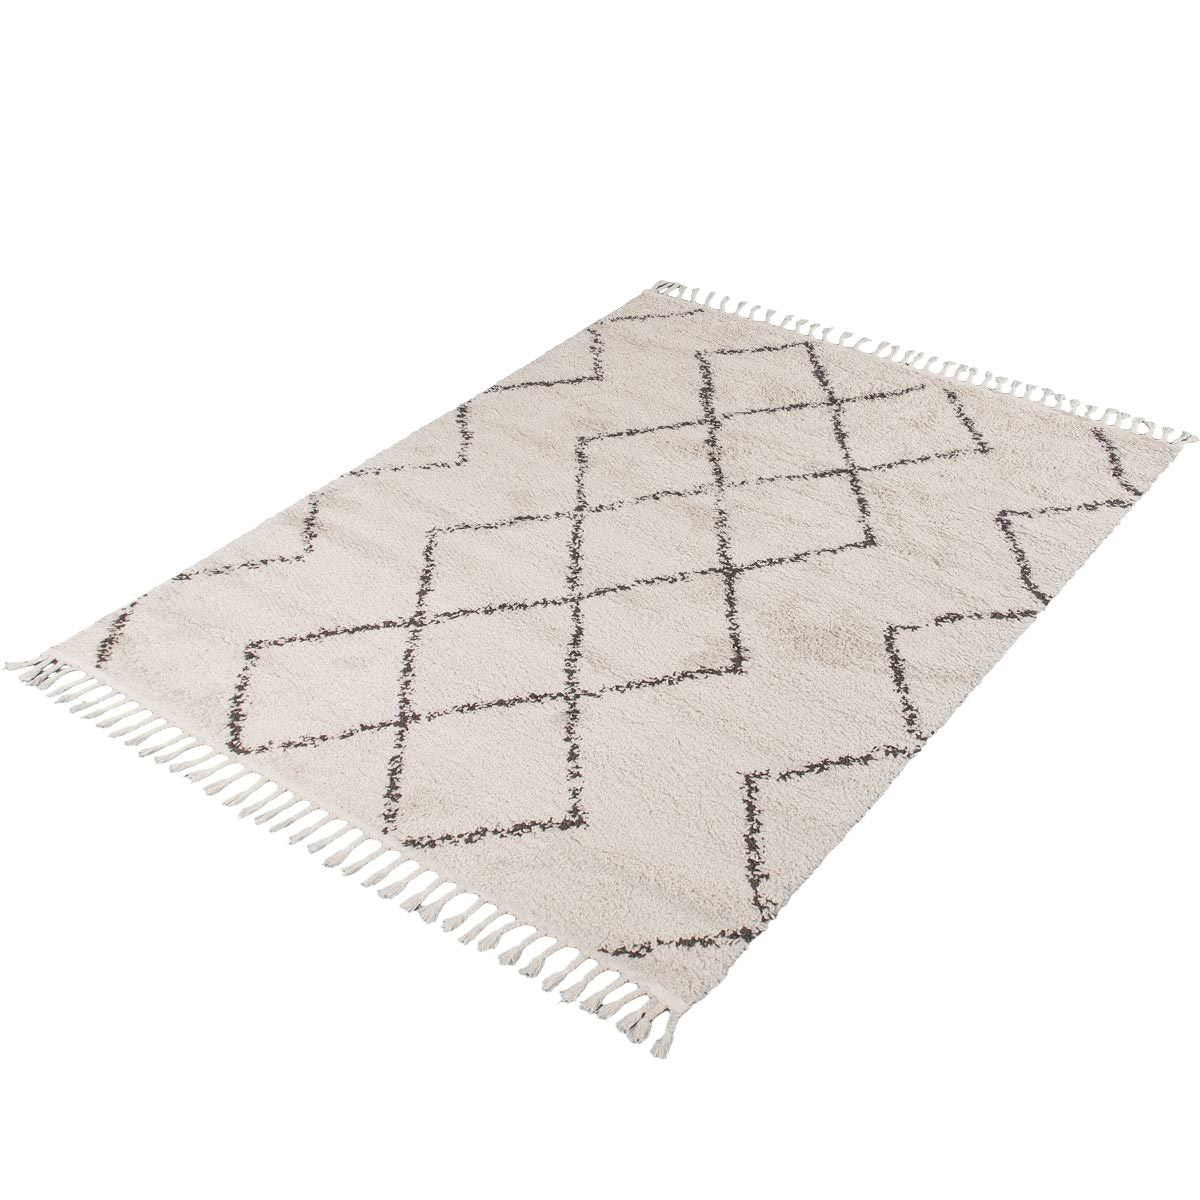 Shaggy Marrakech Rug 03 Cream/Black 9